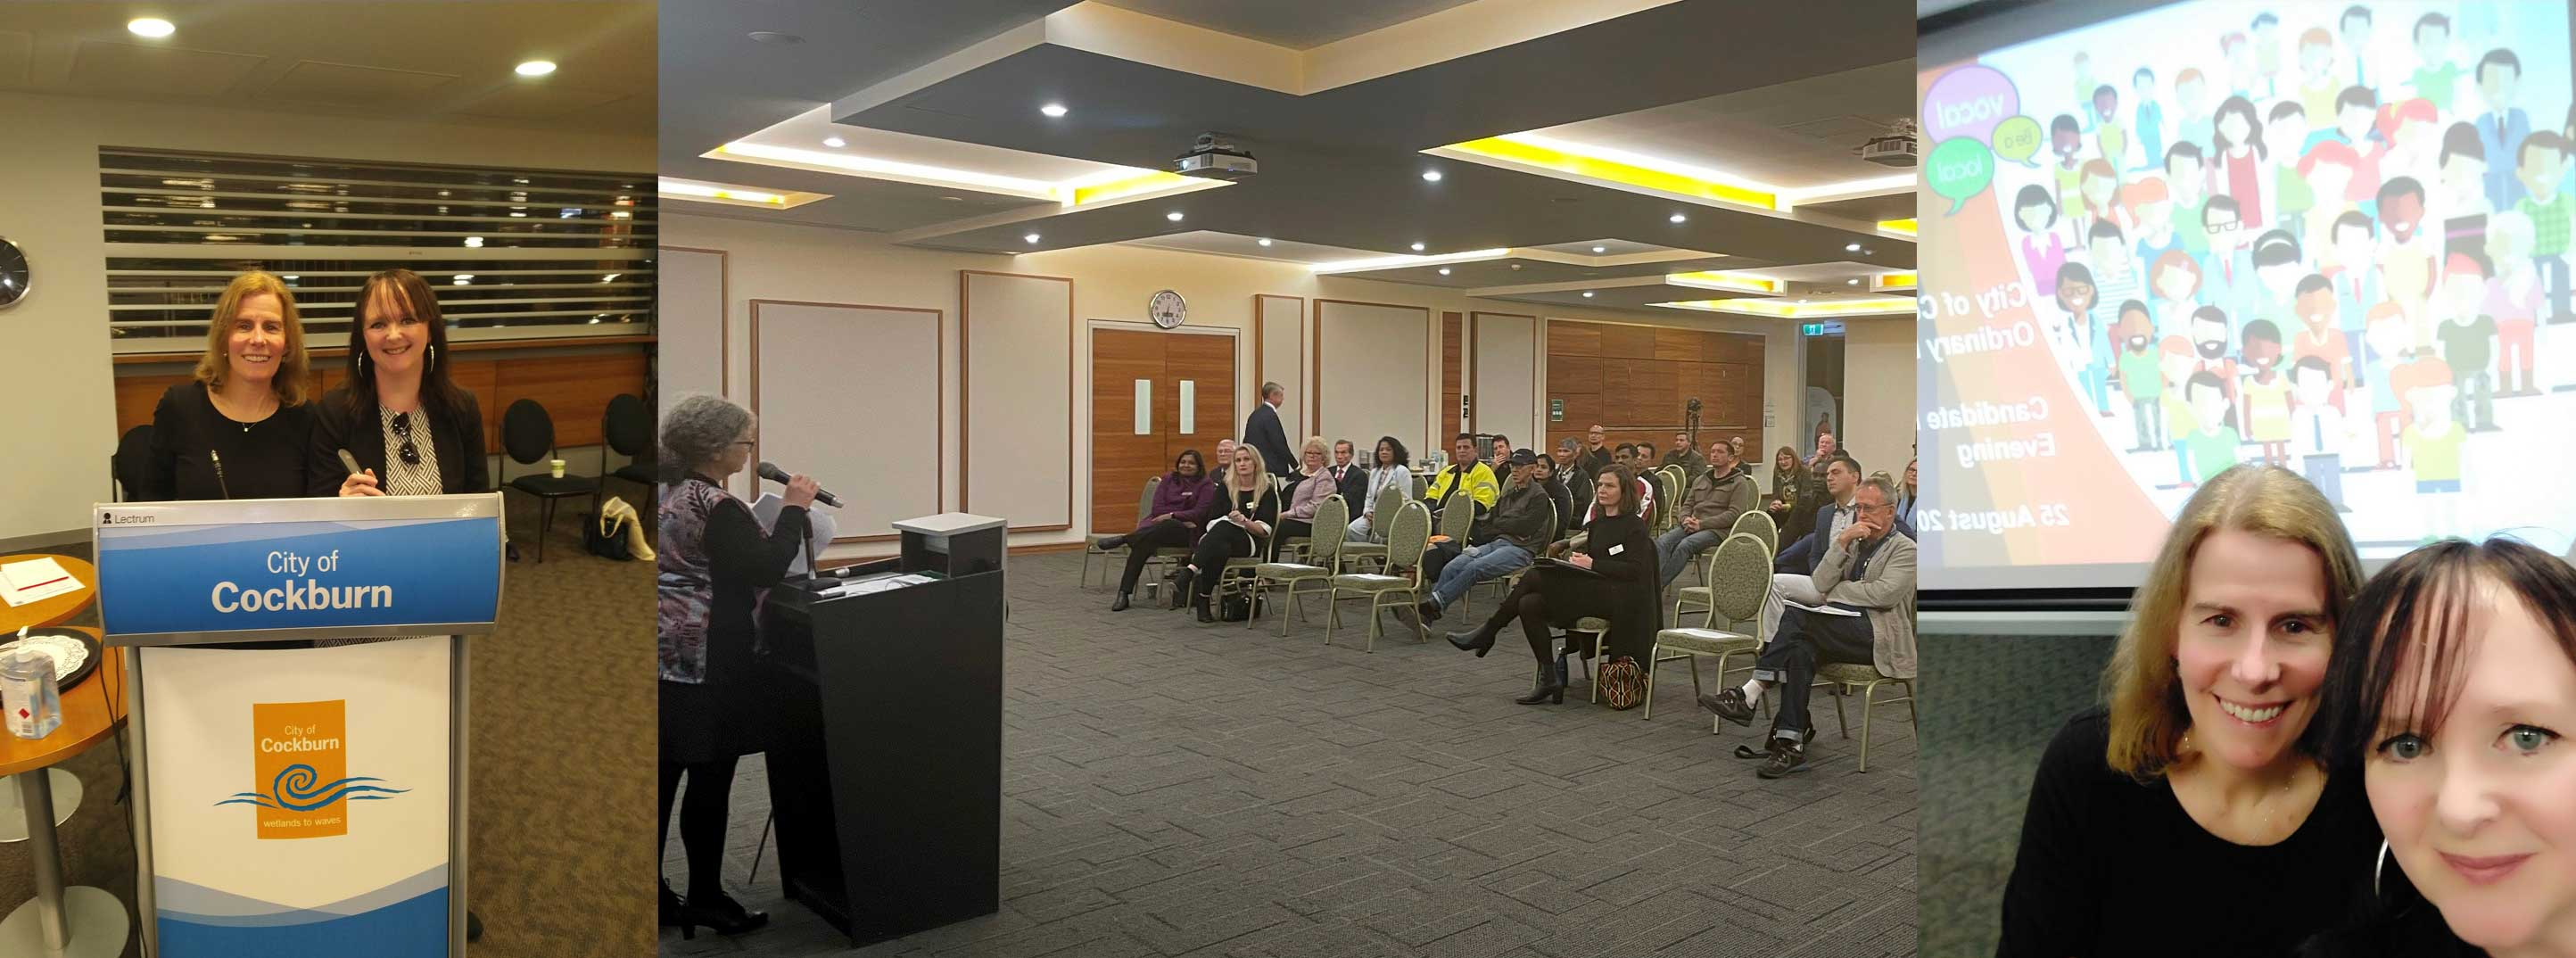 Montage of photos from local government information sessions